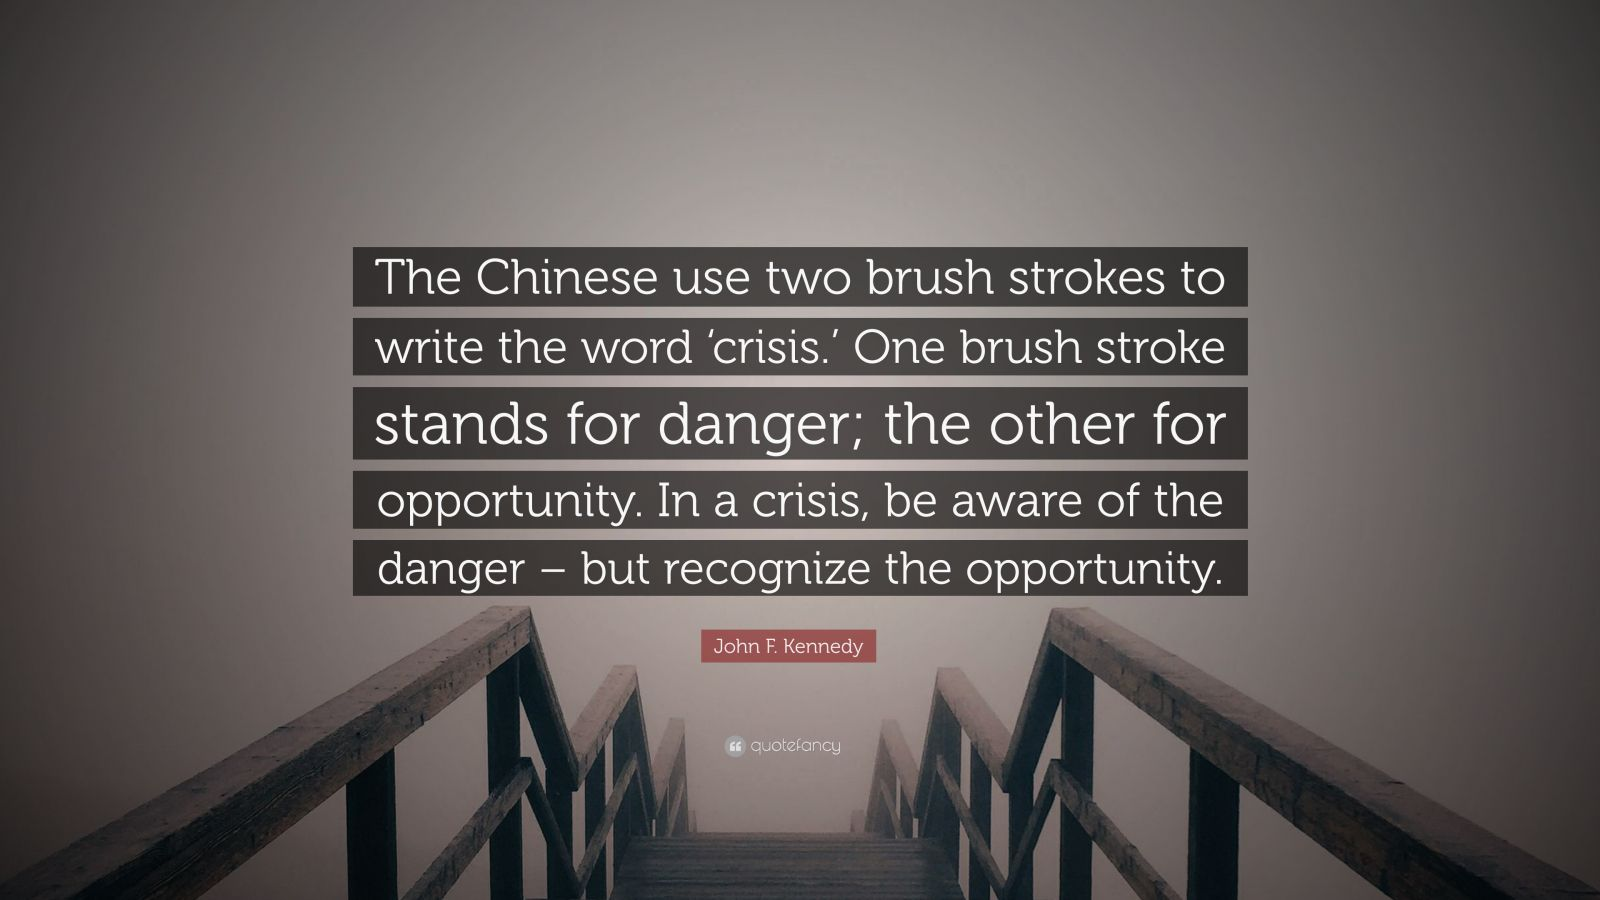 """John F. Kennedy Quote: """"The Chinese use two brush strokes to write the word 'crisis.' One brush stroke stands for danger; the other for opportunity. In a crisis, be aware of the danger – but recognize the opportunity."""""""